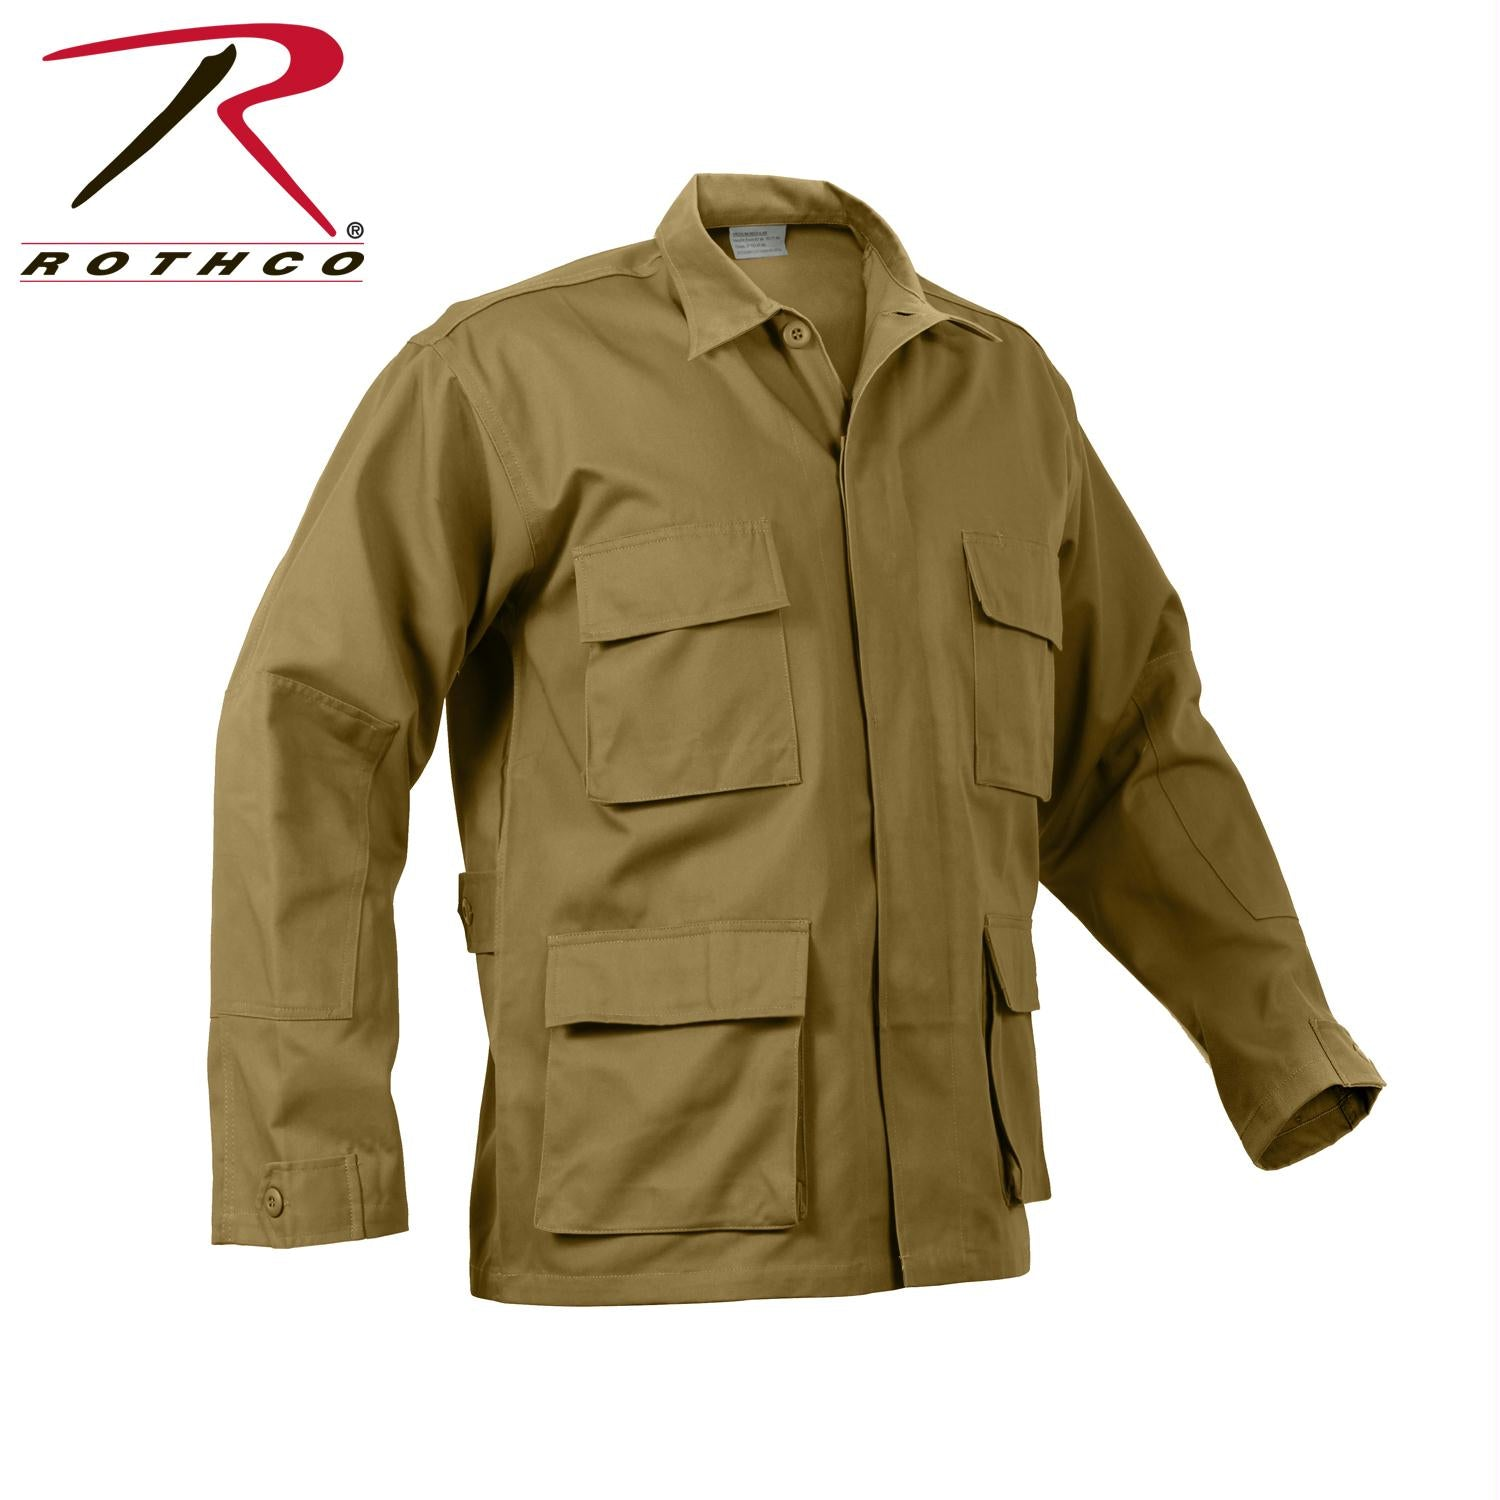 Rothco Poly/Cotton Twill Solid BDU Shirts - Coyote Brown / XL